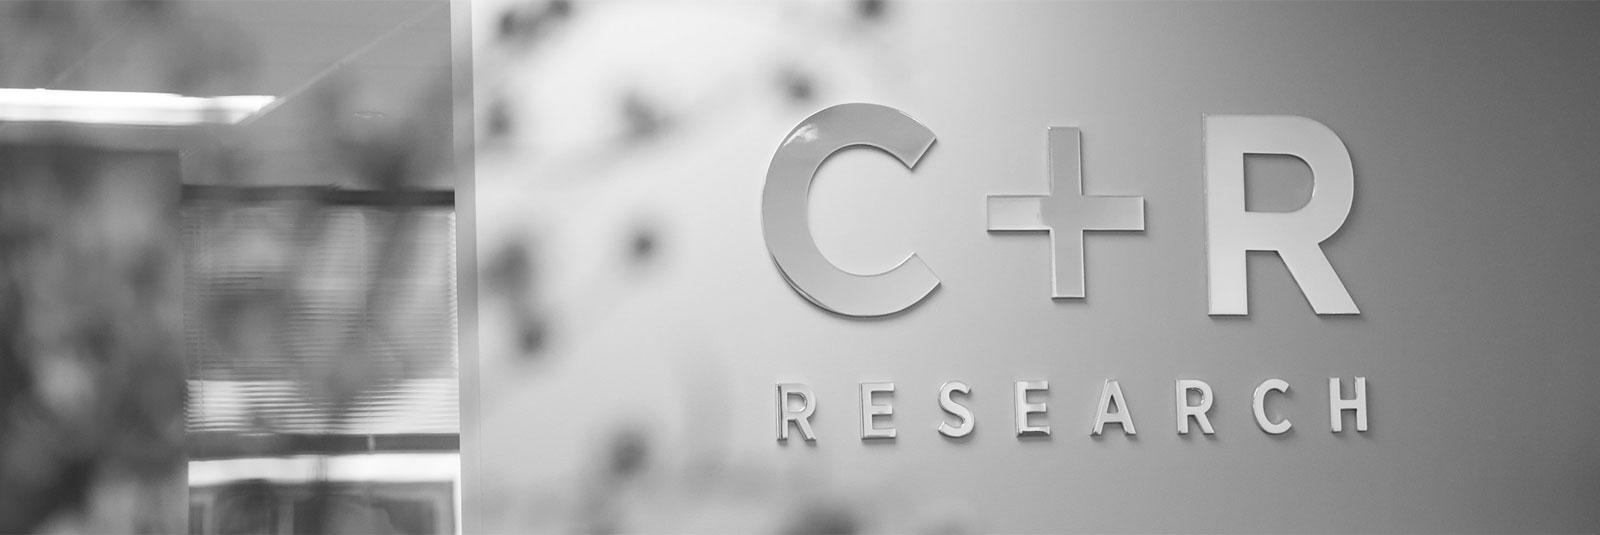 C+R Ressearch Careers